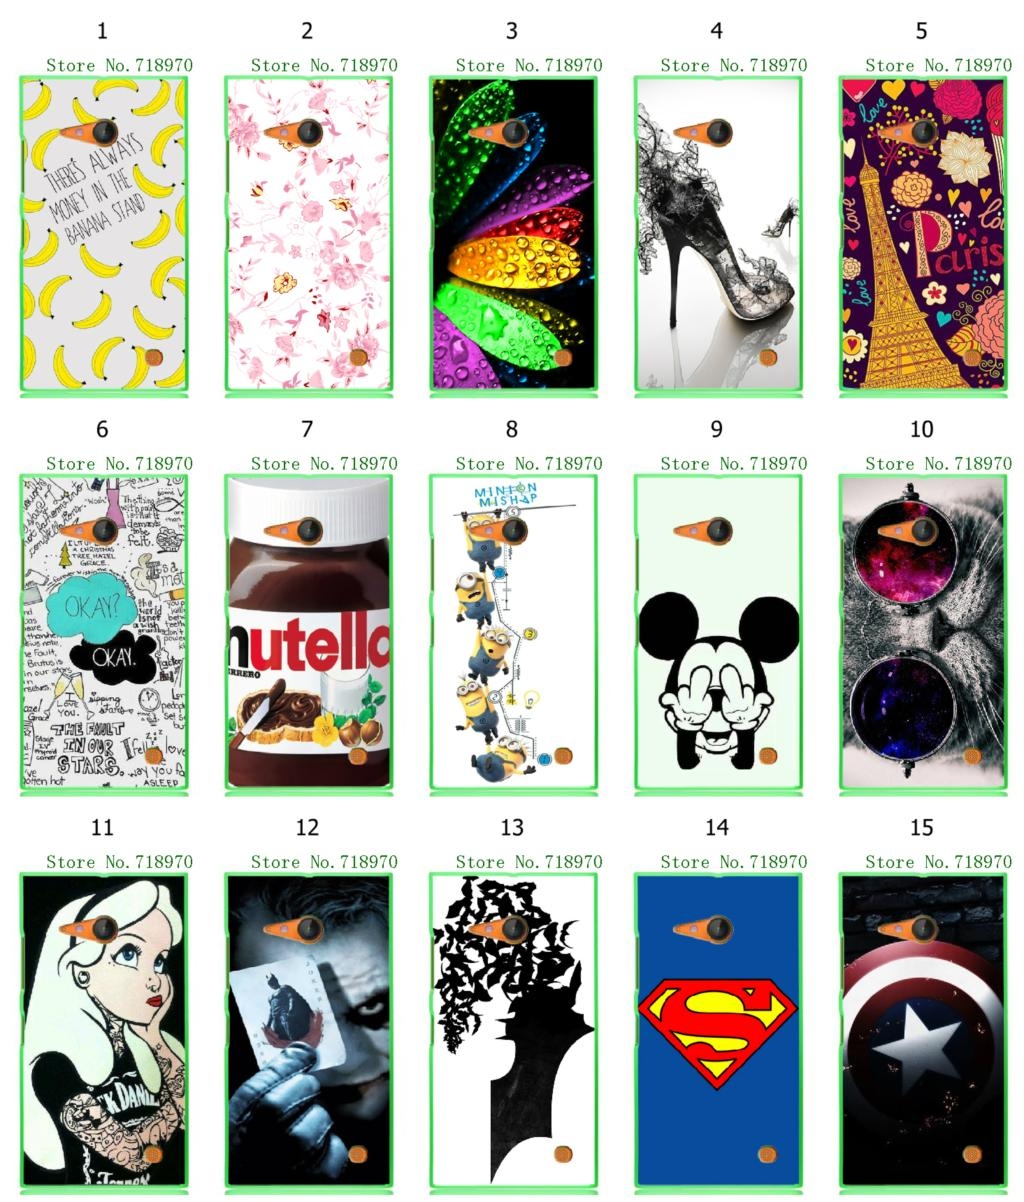 15designs new arrival Towel tiger Minions hybrid retail white hard mobile phone bags & cases for Nokia Lumia 730 N730 free ship(China (Mainland))